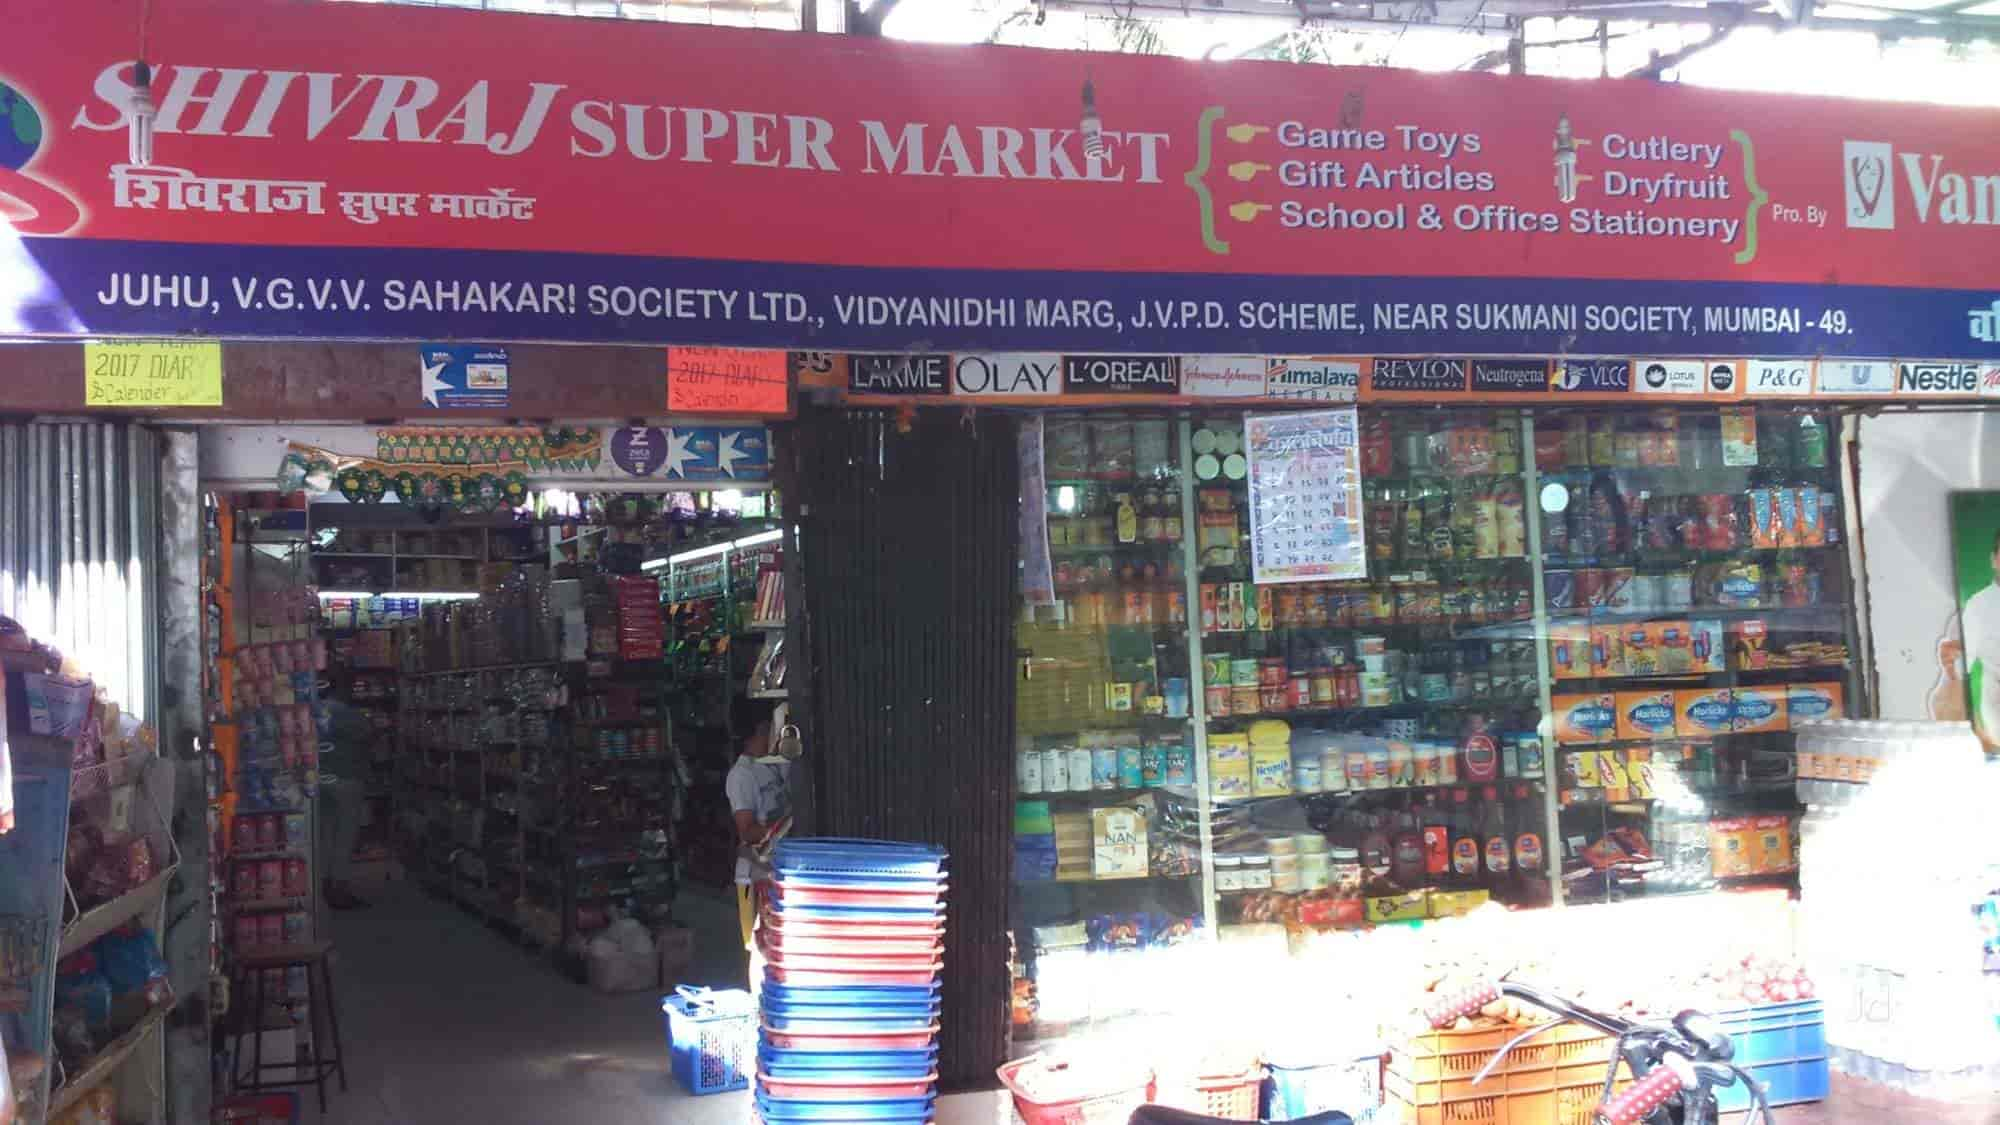 Shivraj Super Market, Juhu - Supermarkets in Mumbai - Justdial